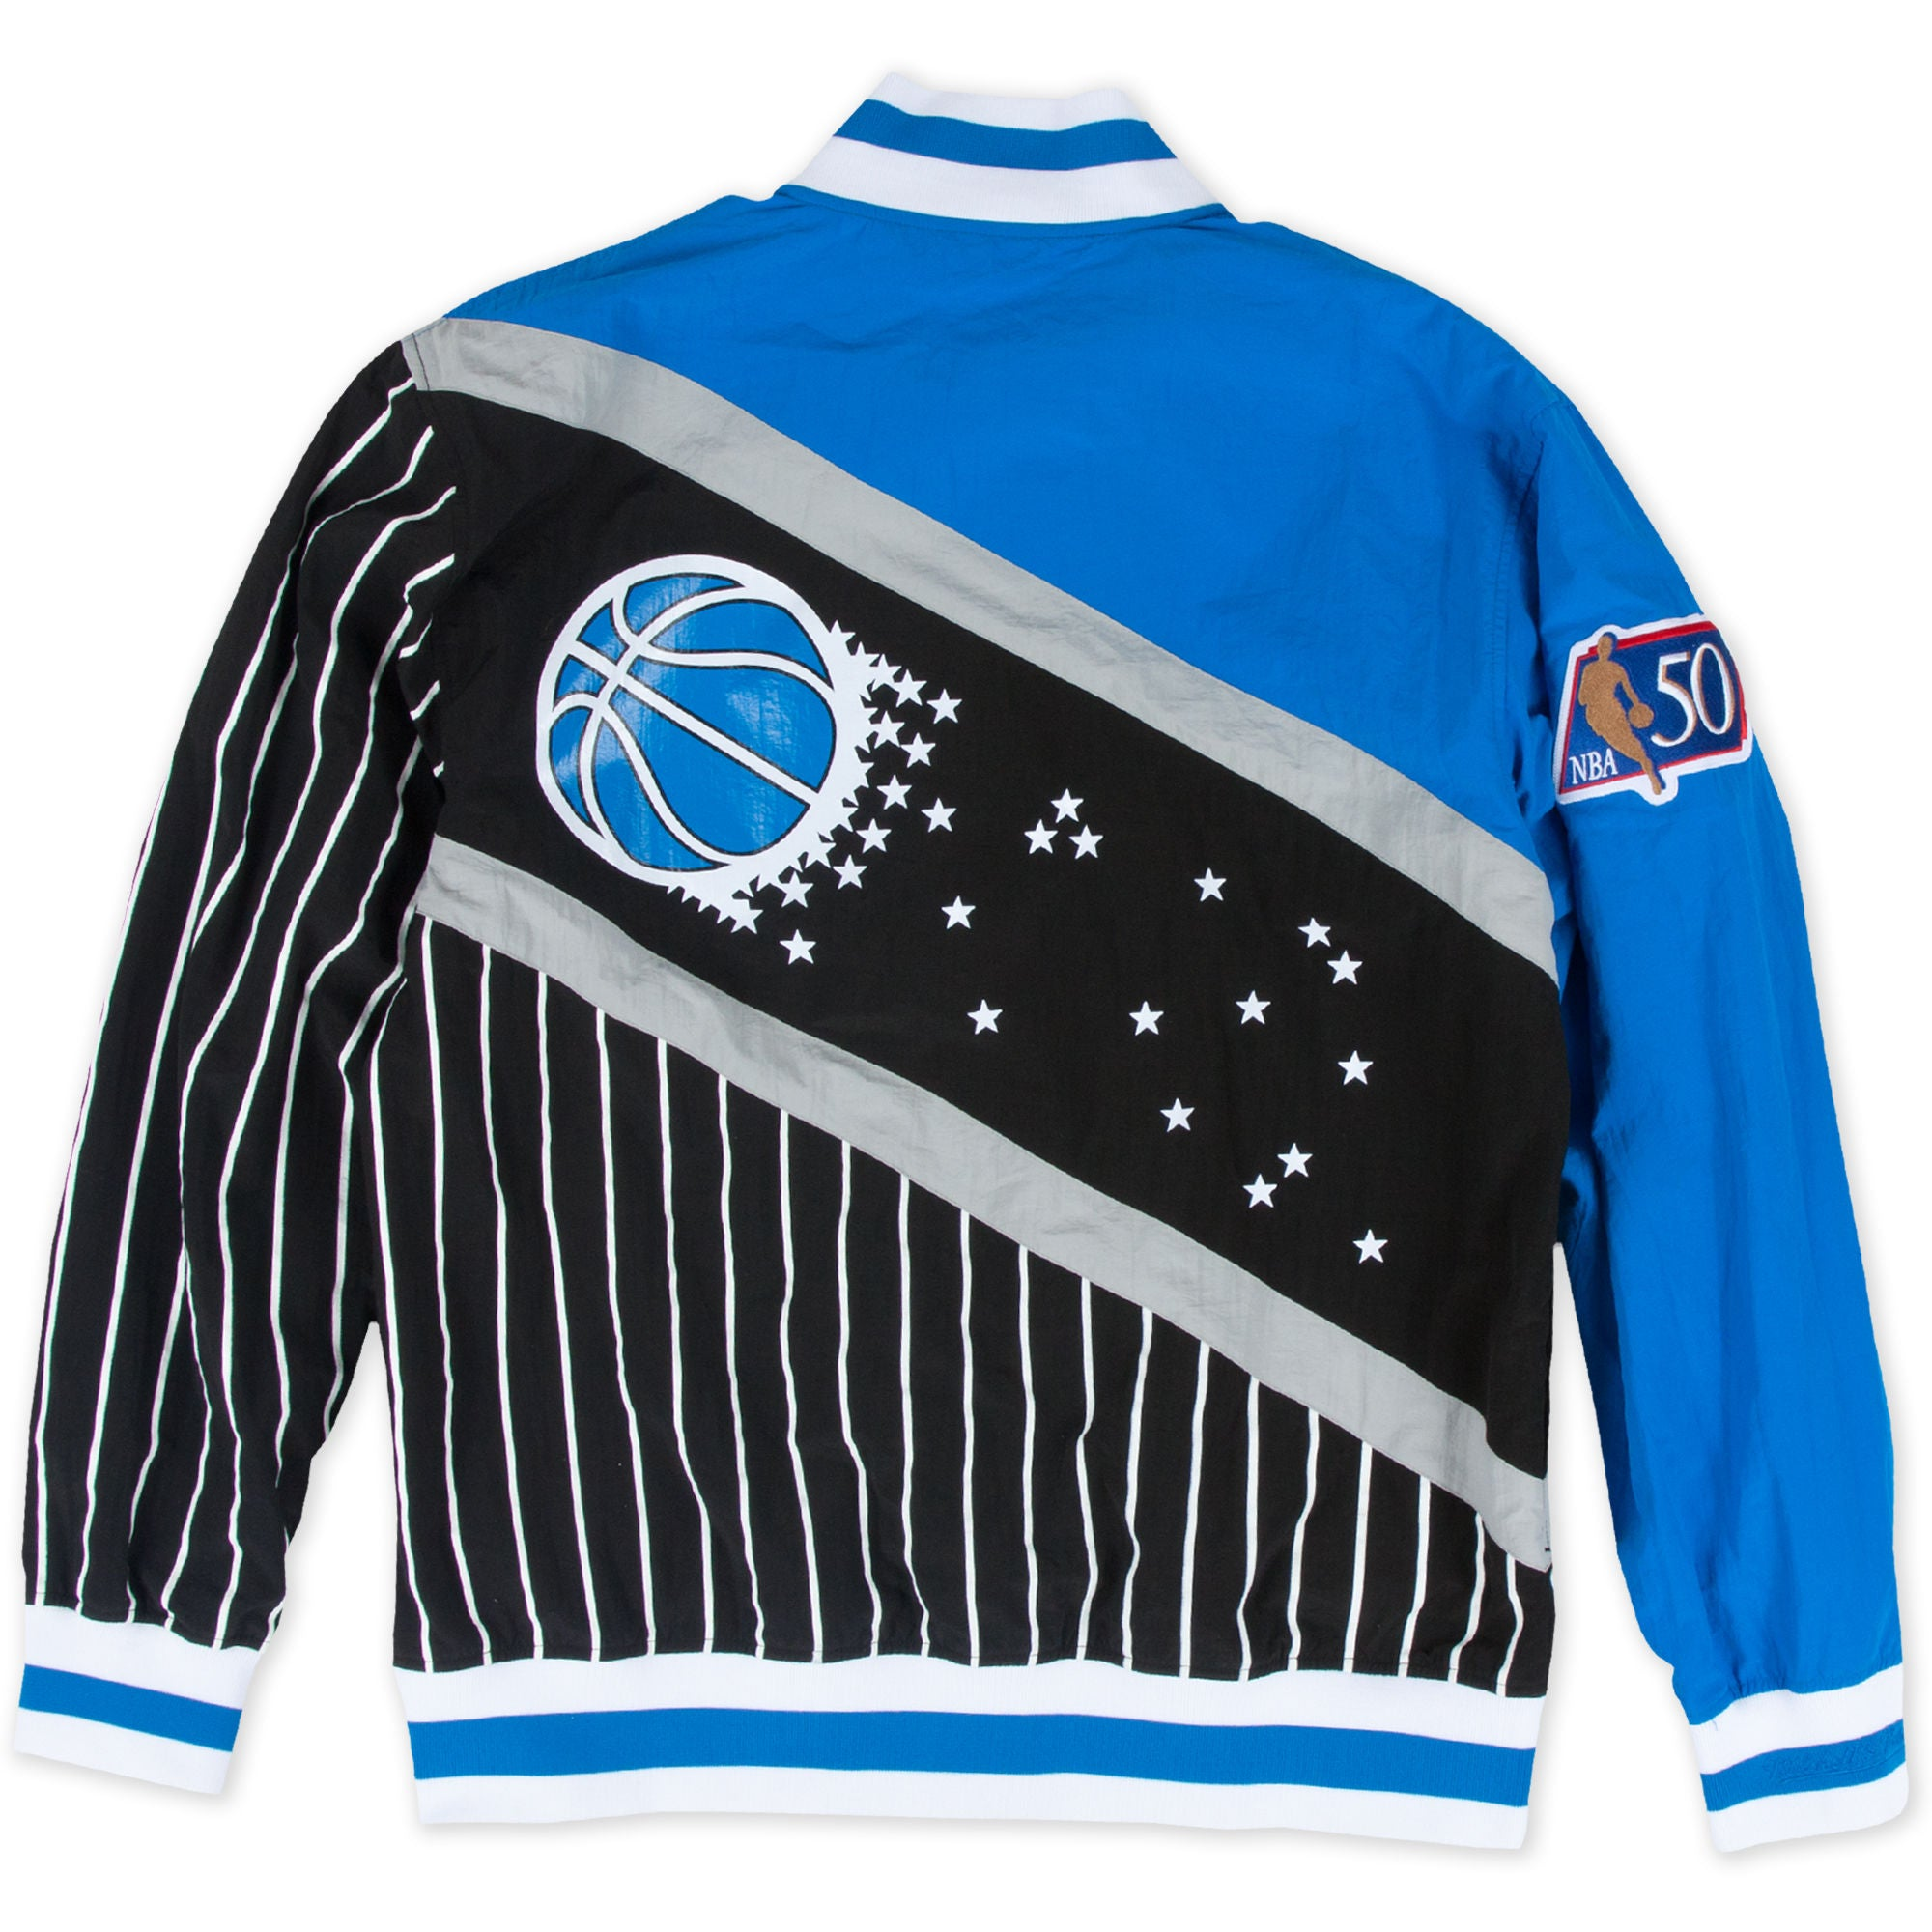 24ed263404c Mitchell   Ness Orlando Magic 1996-97 NBA Authentic Warm Up Jacket